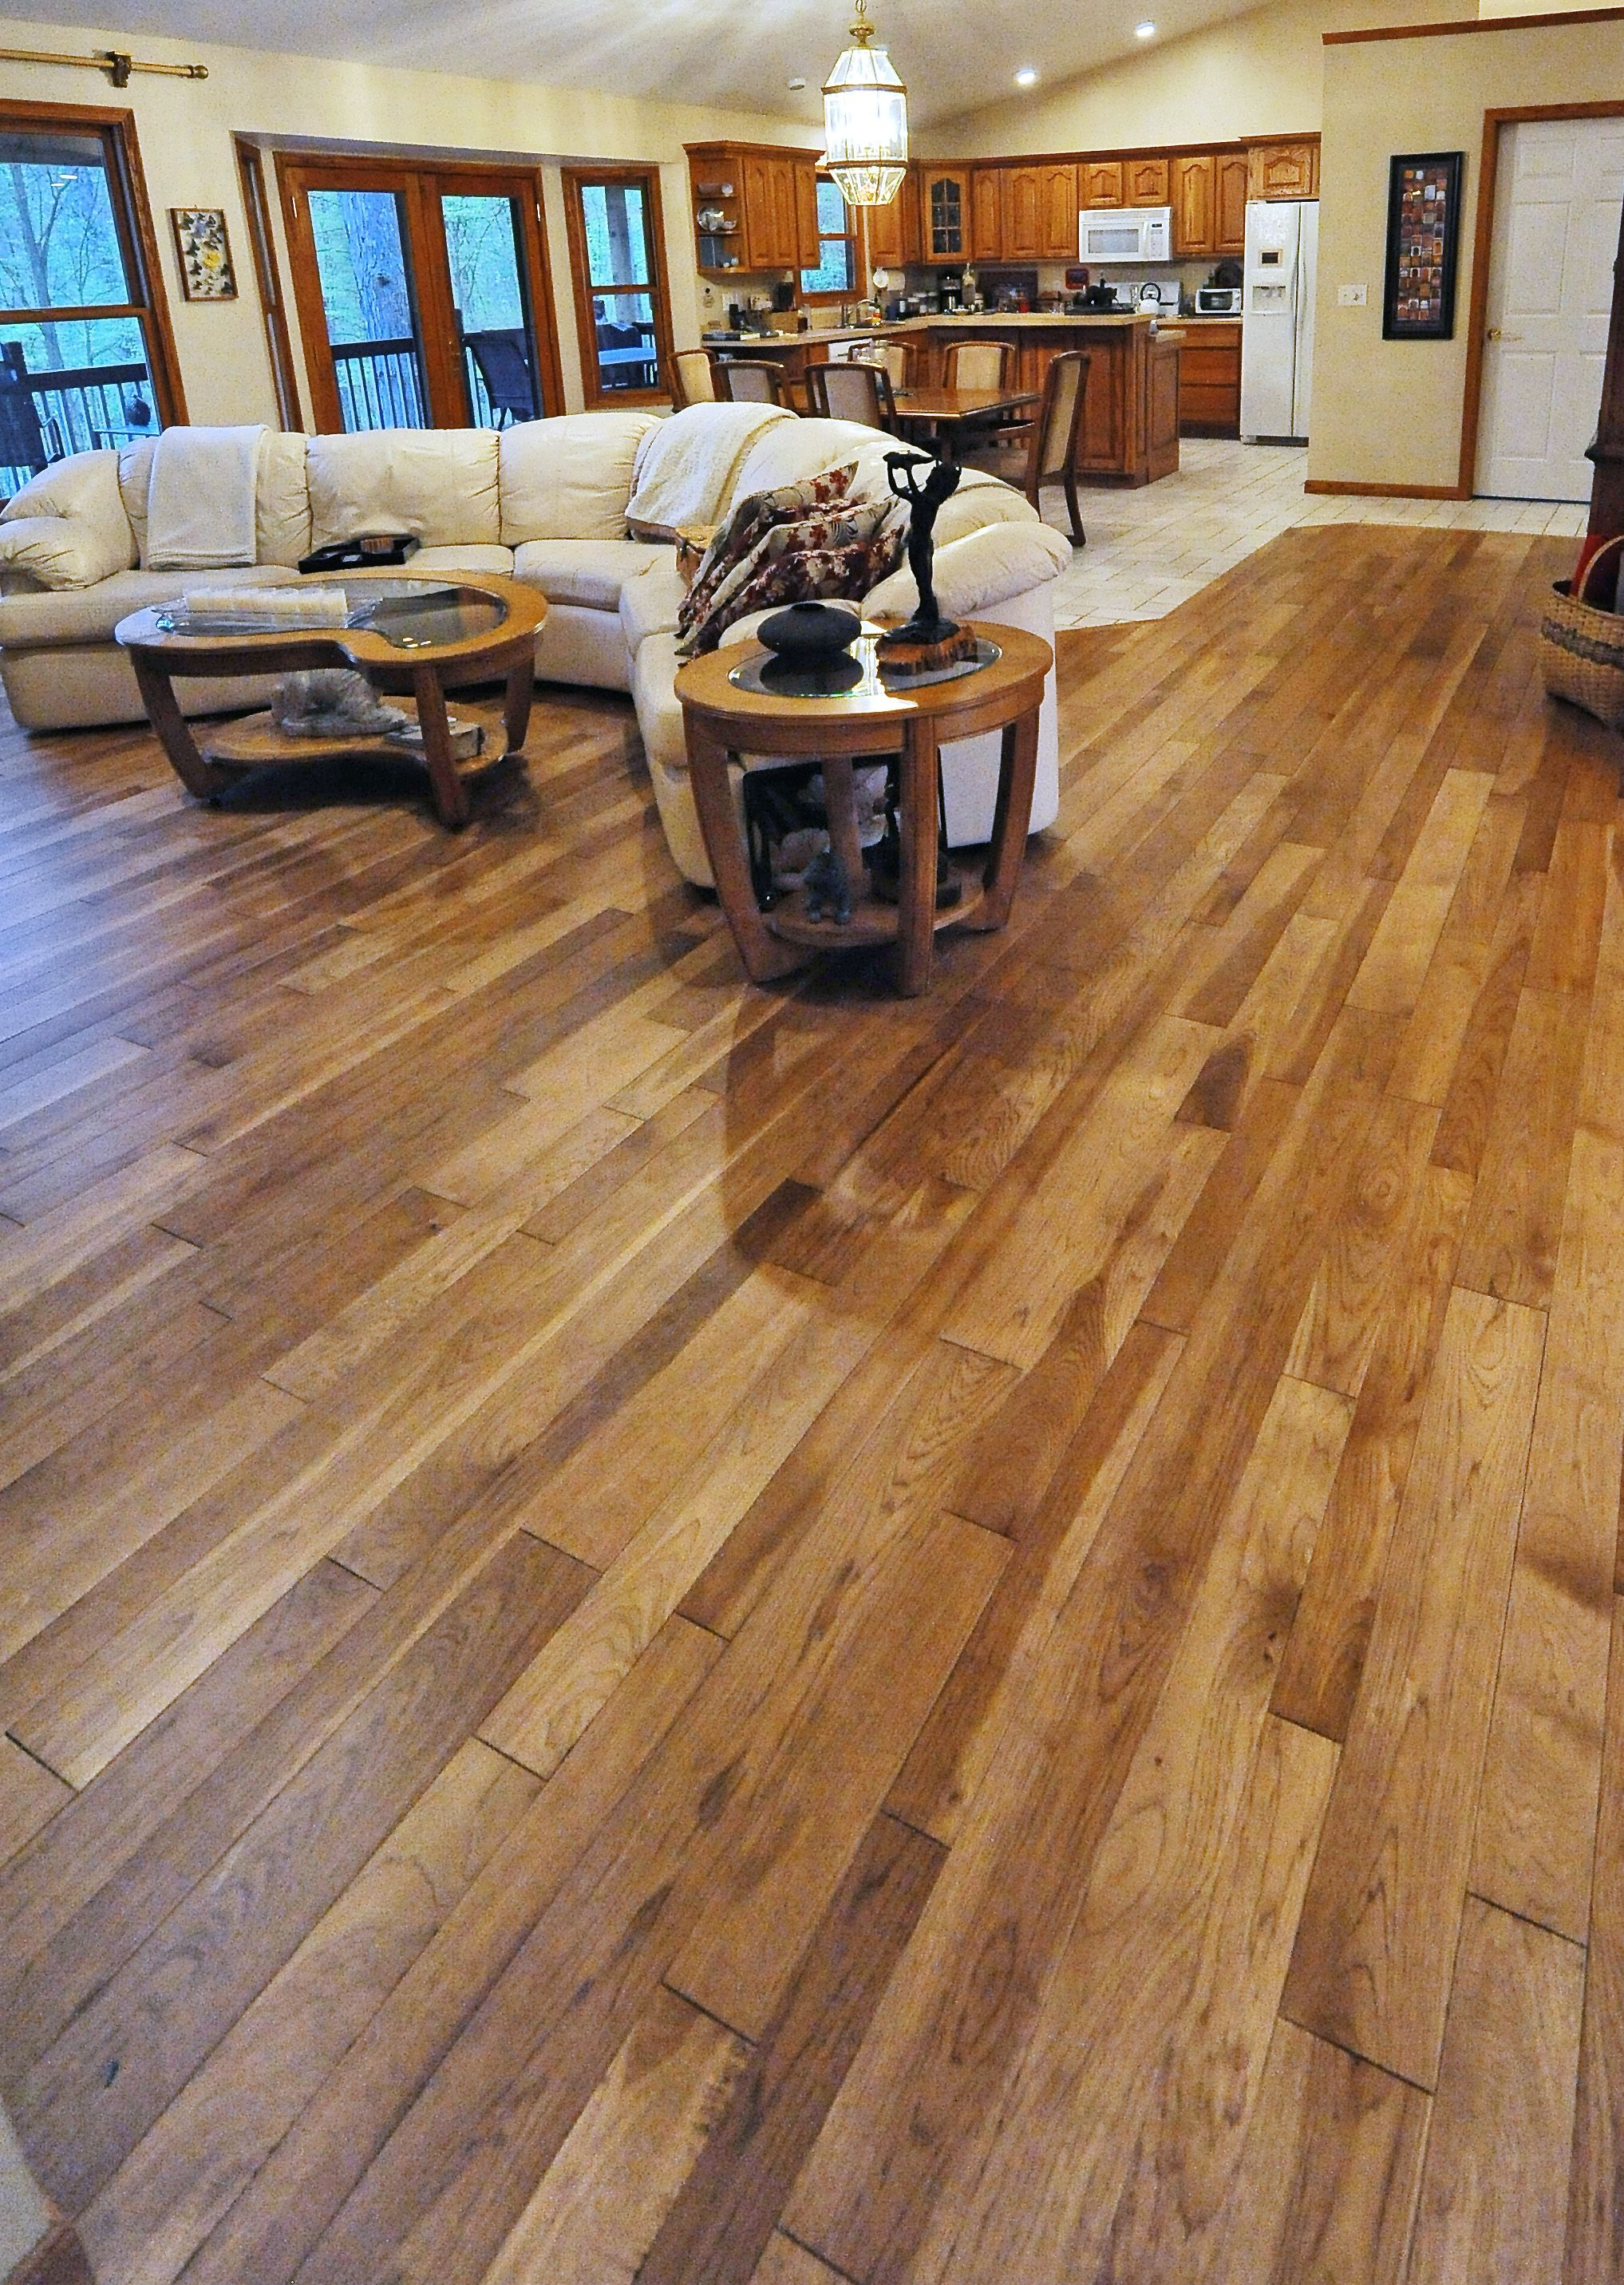 Most Durable Hardwood Floor Material Flooring Materials Hardwood Flooring